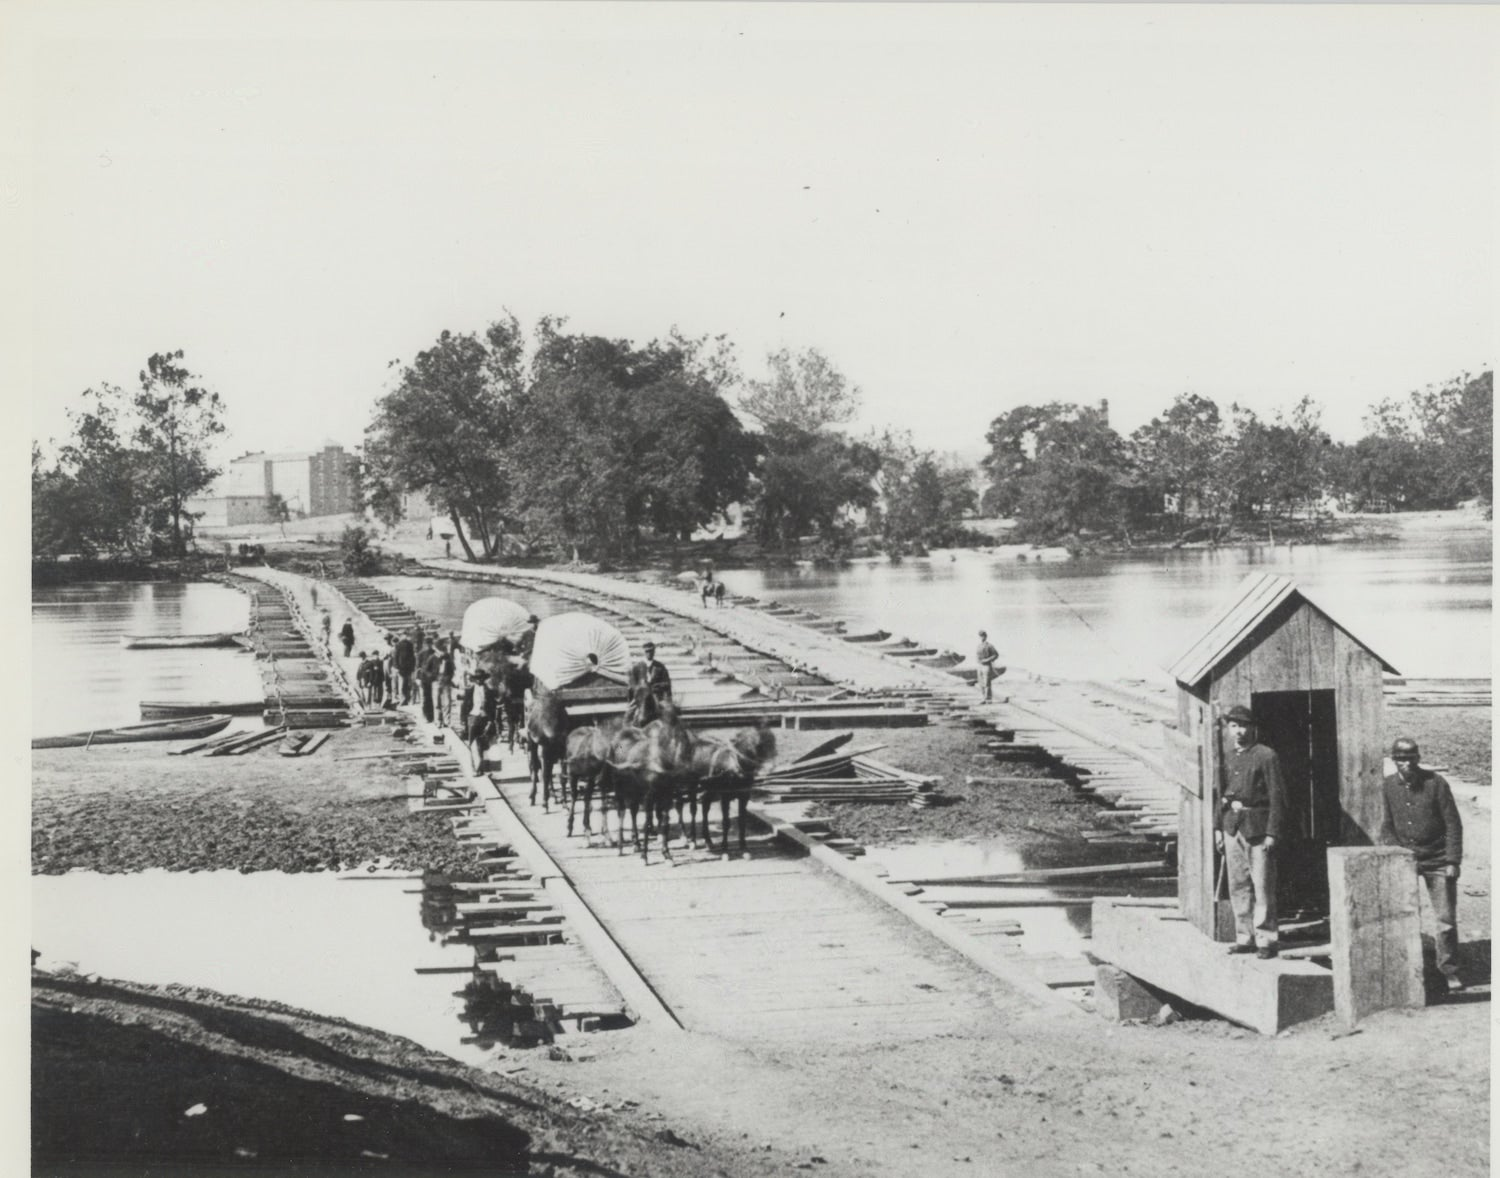 Army Corps of Engineers building a bridge during the civil war